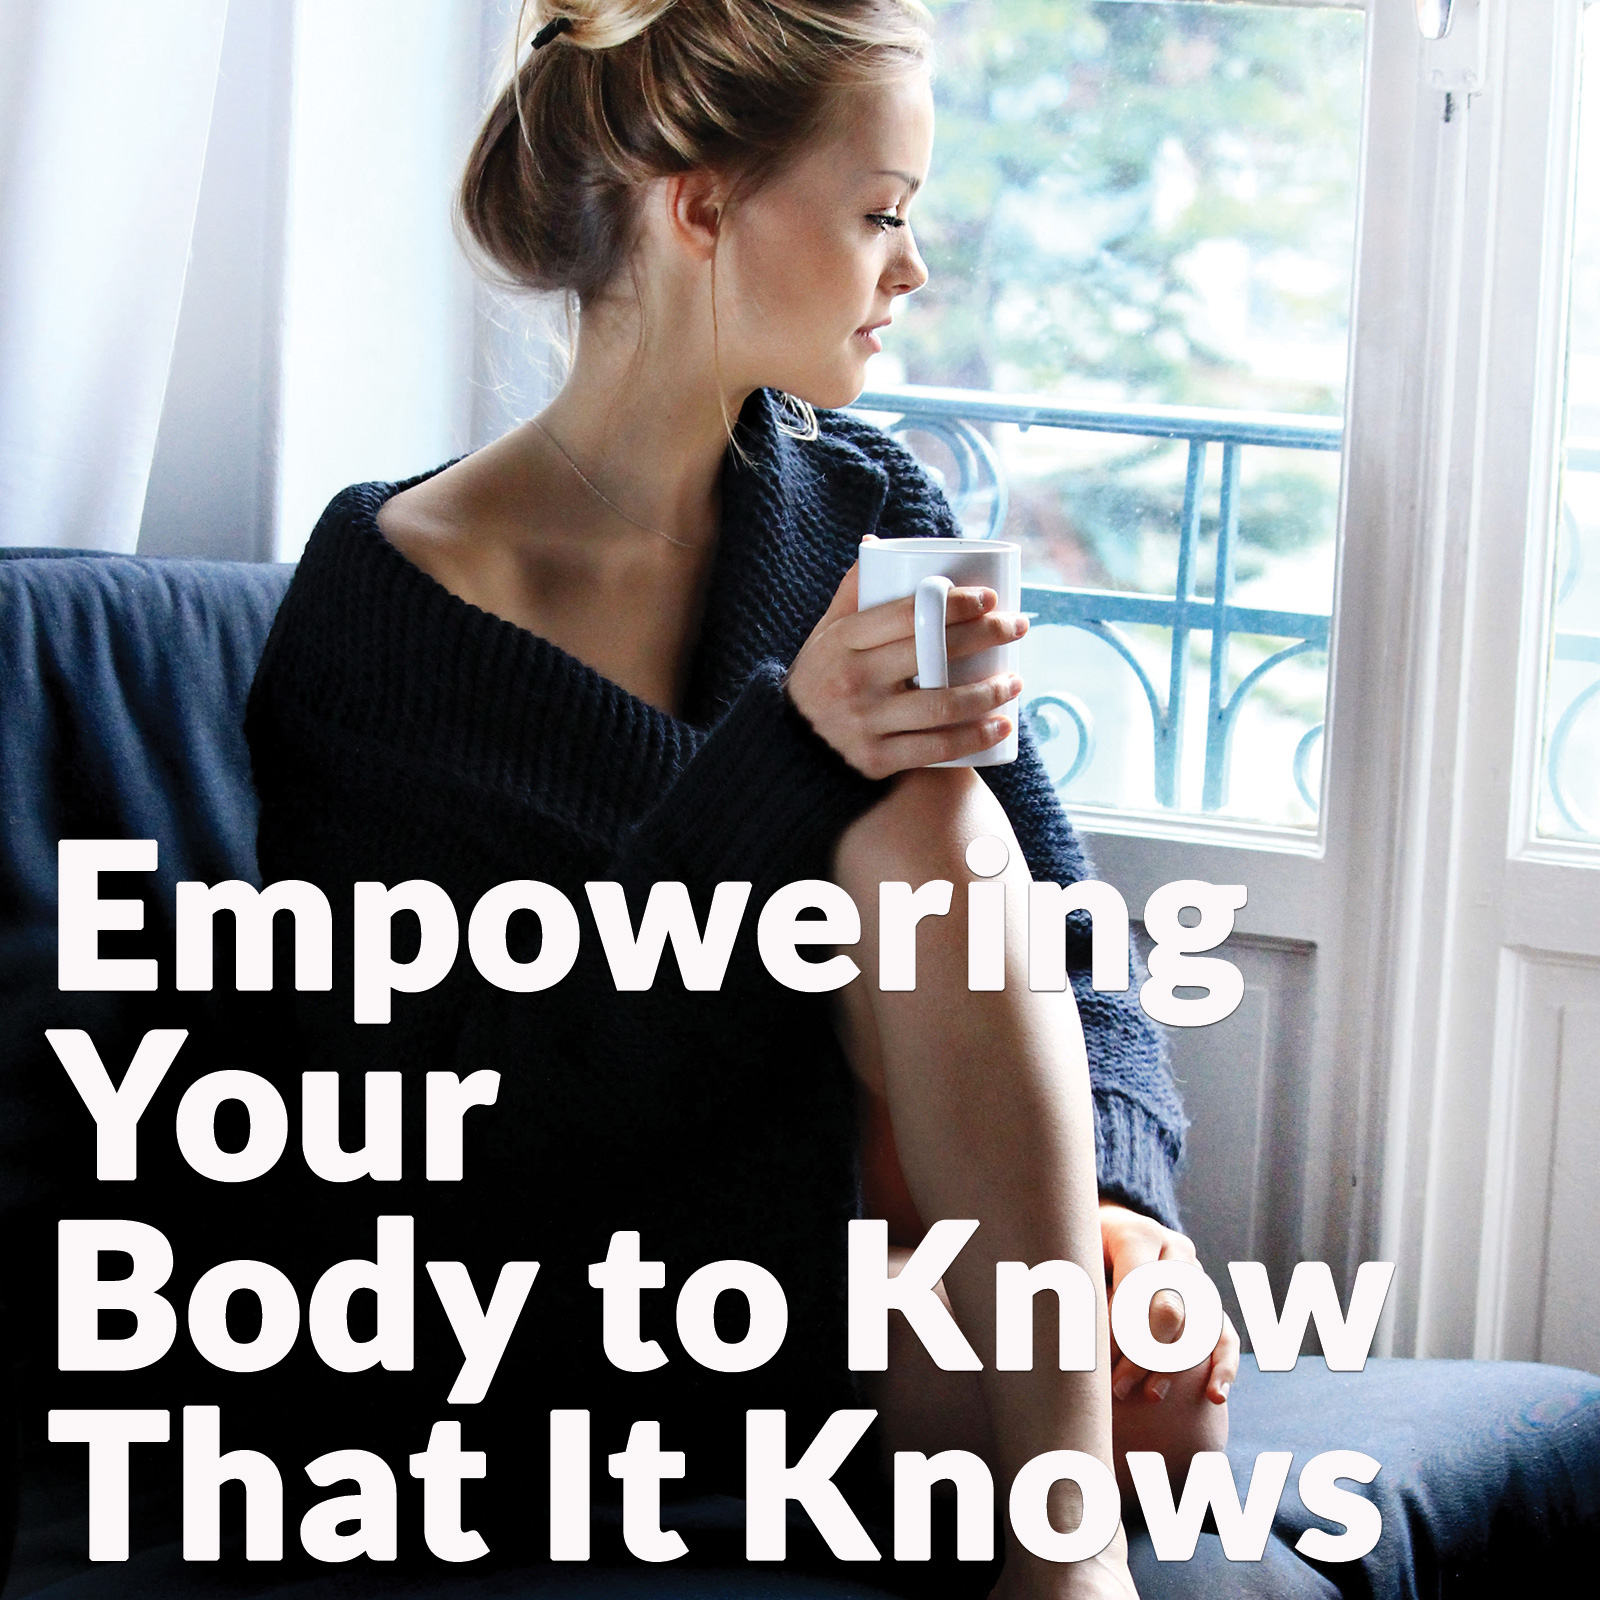 Empowering Your Body to Know That It Knows